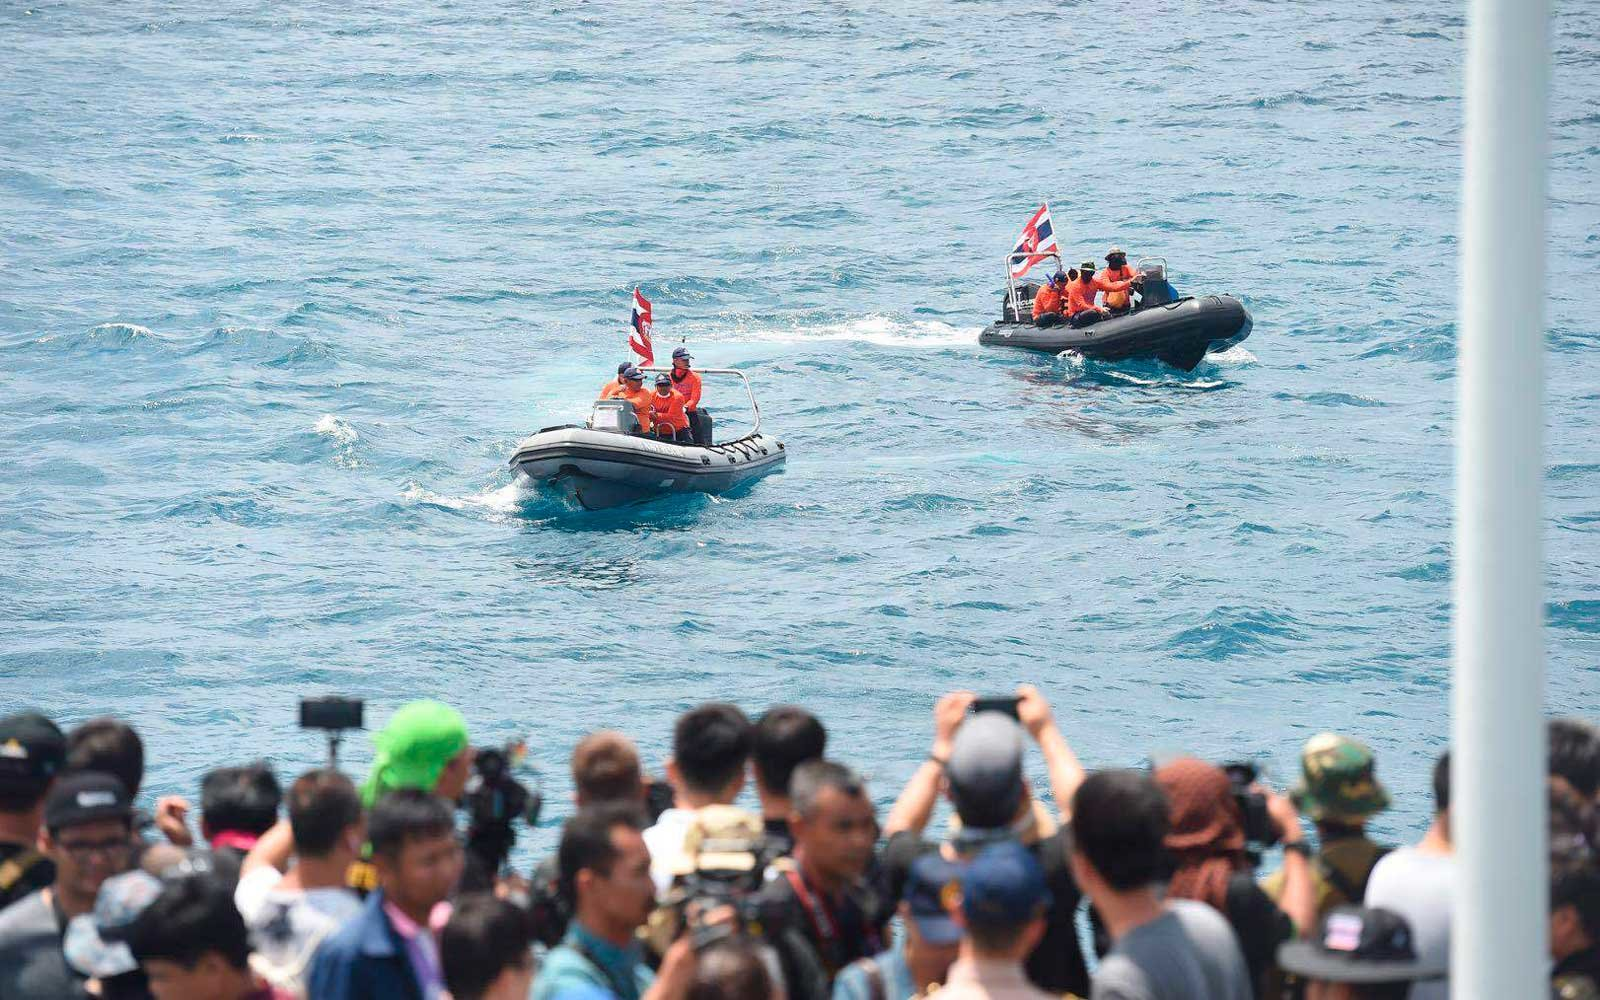 Thai rescue boats search for missing people in Phuket Island waters after two boats carrying 127 Chinese tourists capsized in Phuket, Thailand, 8 July 2018.